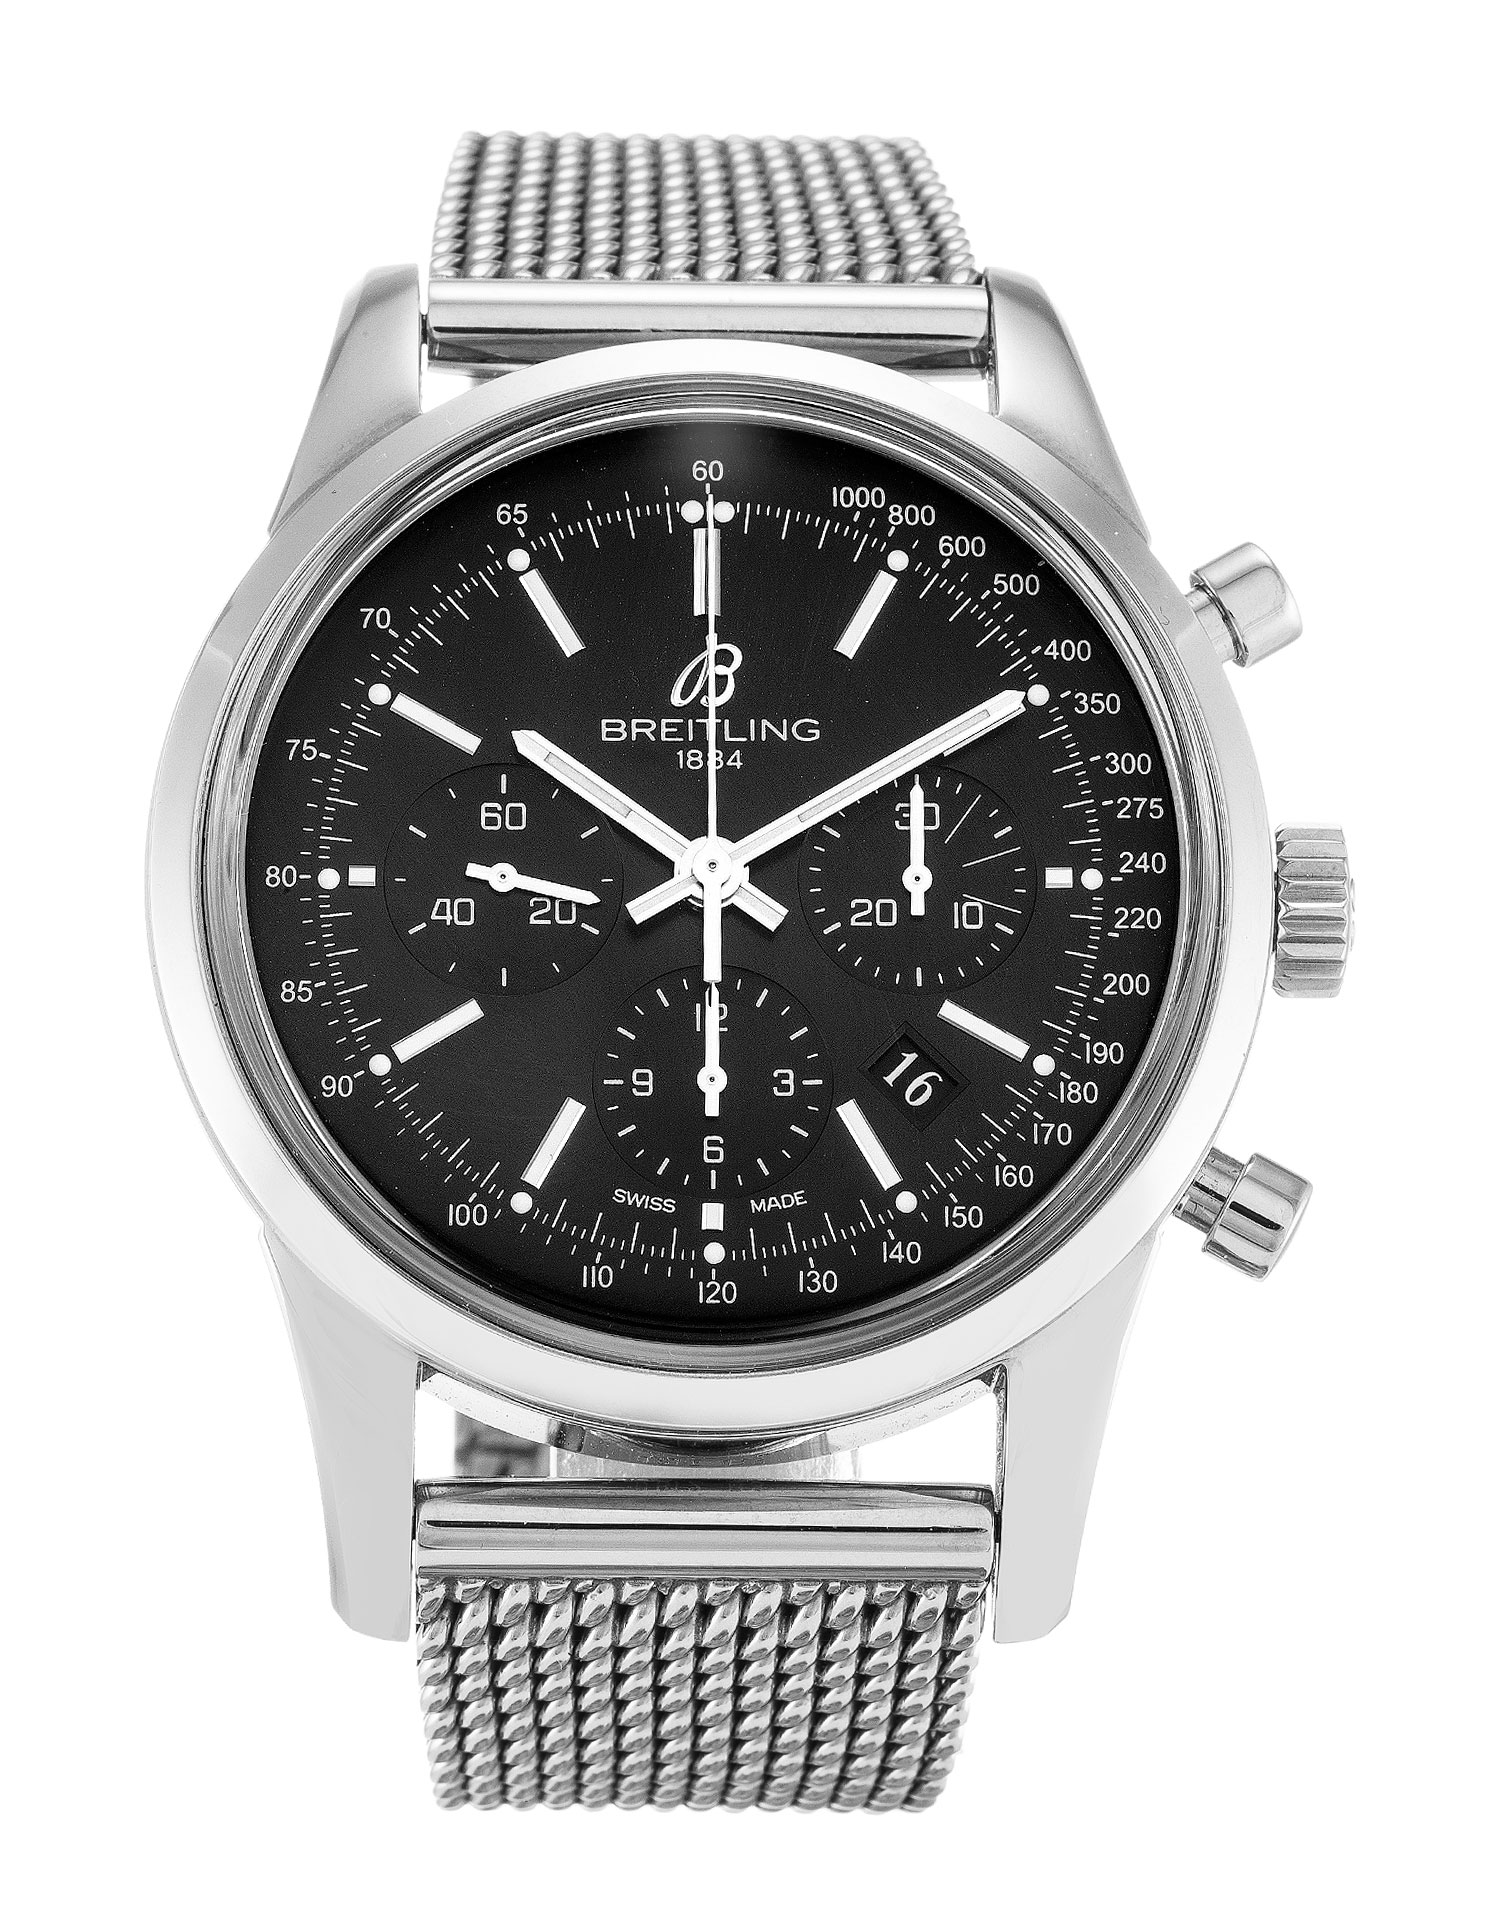 Breitling Transocean Chronograph Ab0152 Mens 43 Mm Steel Case Quartz Movement – iapac.to